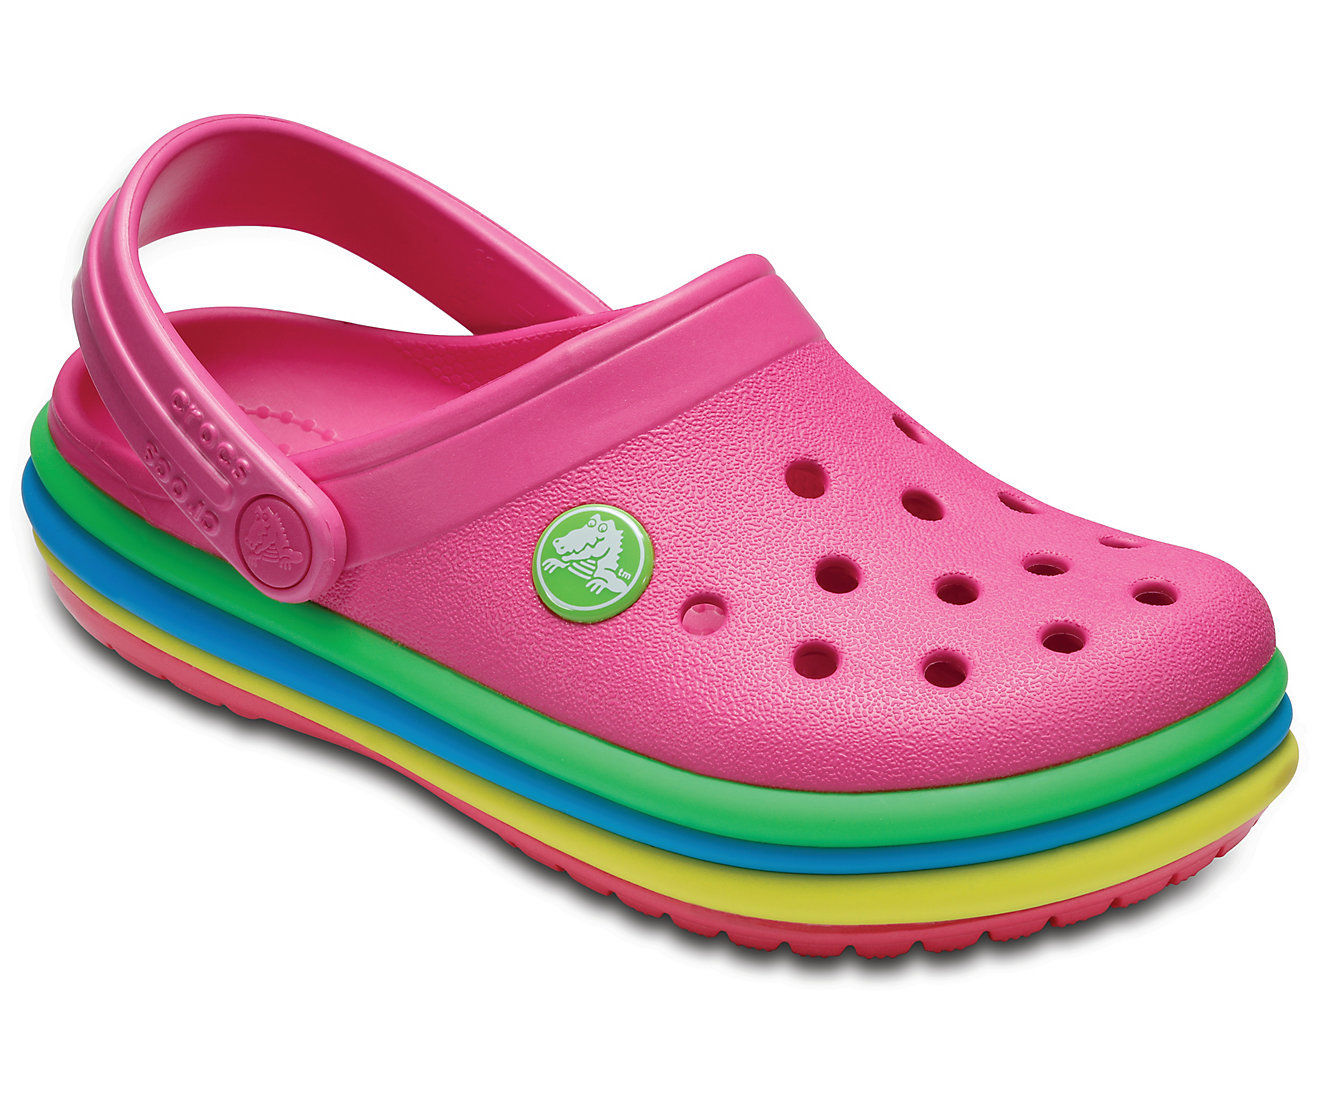 2bf25dde2 Crocs Crocband Rainbow Band Clogs Kids Childrens Clog Shoes Summer Cas –  The Shoe Centre